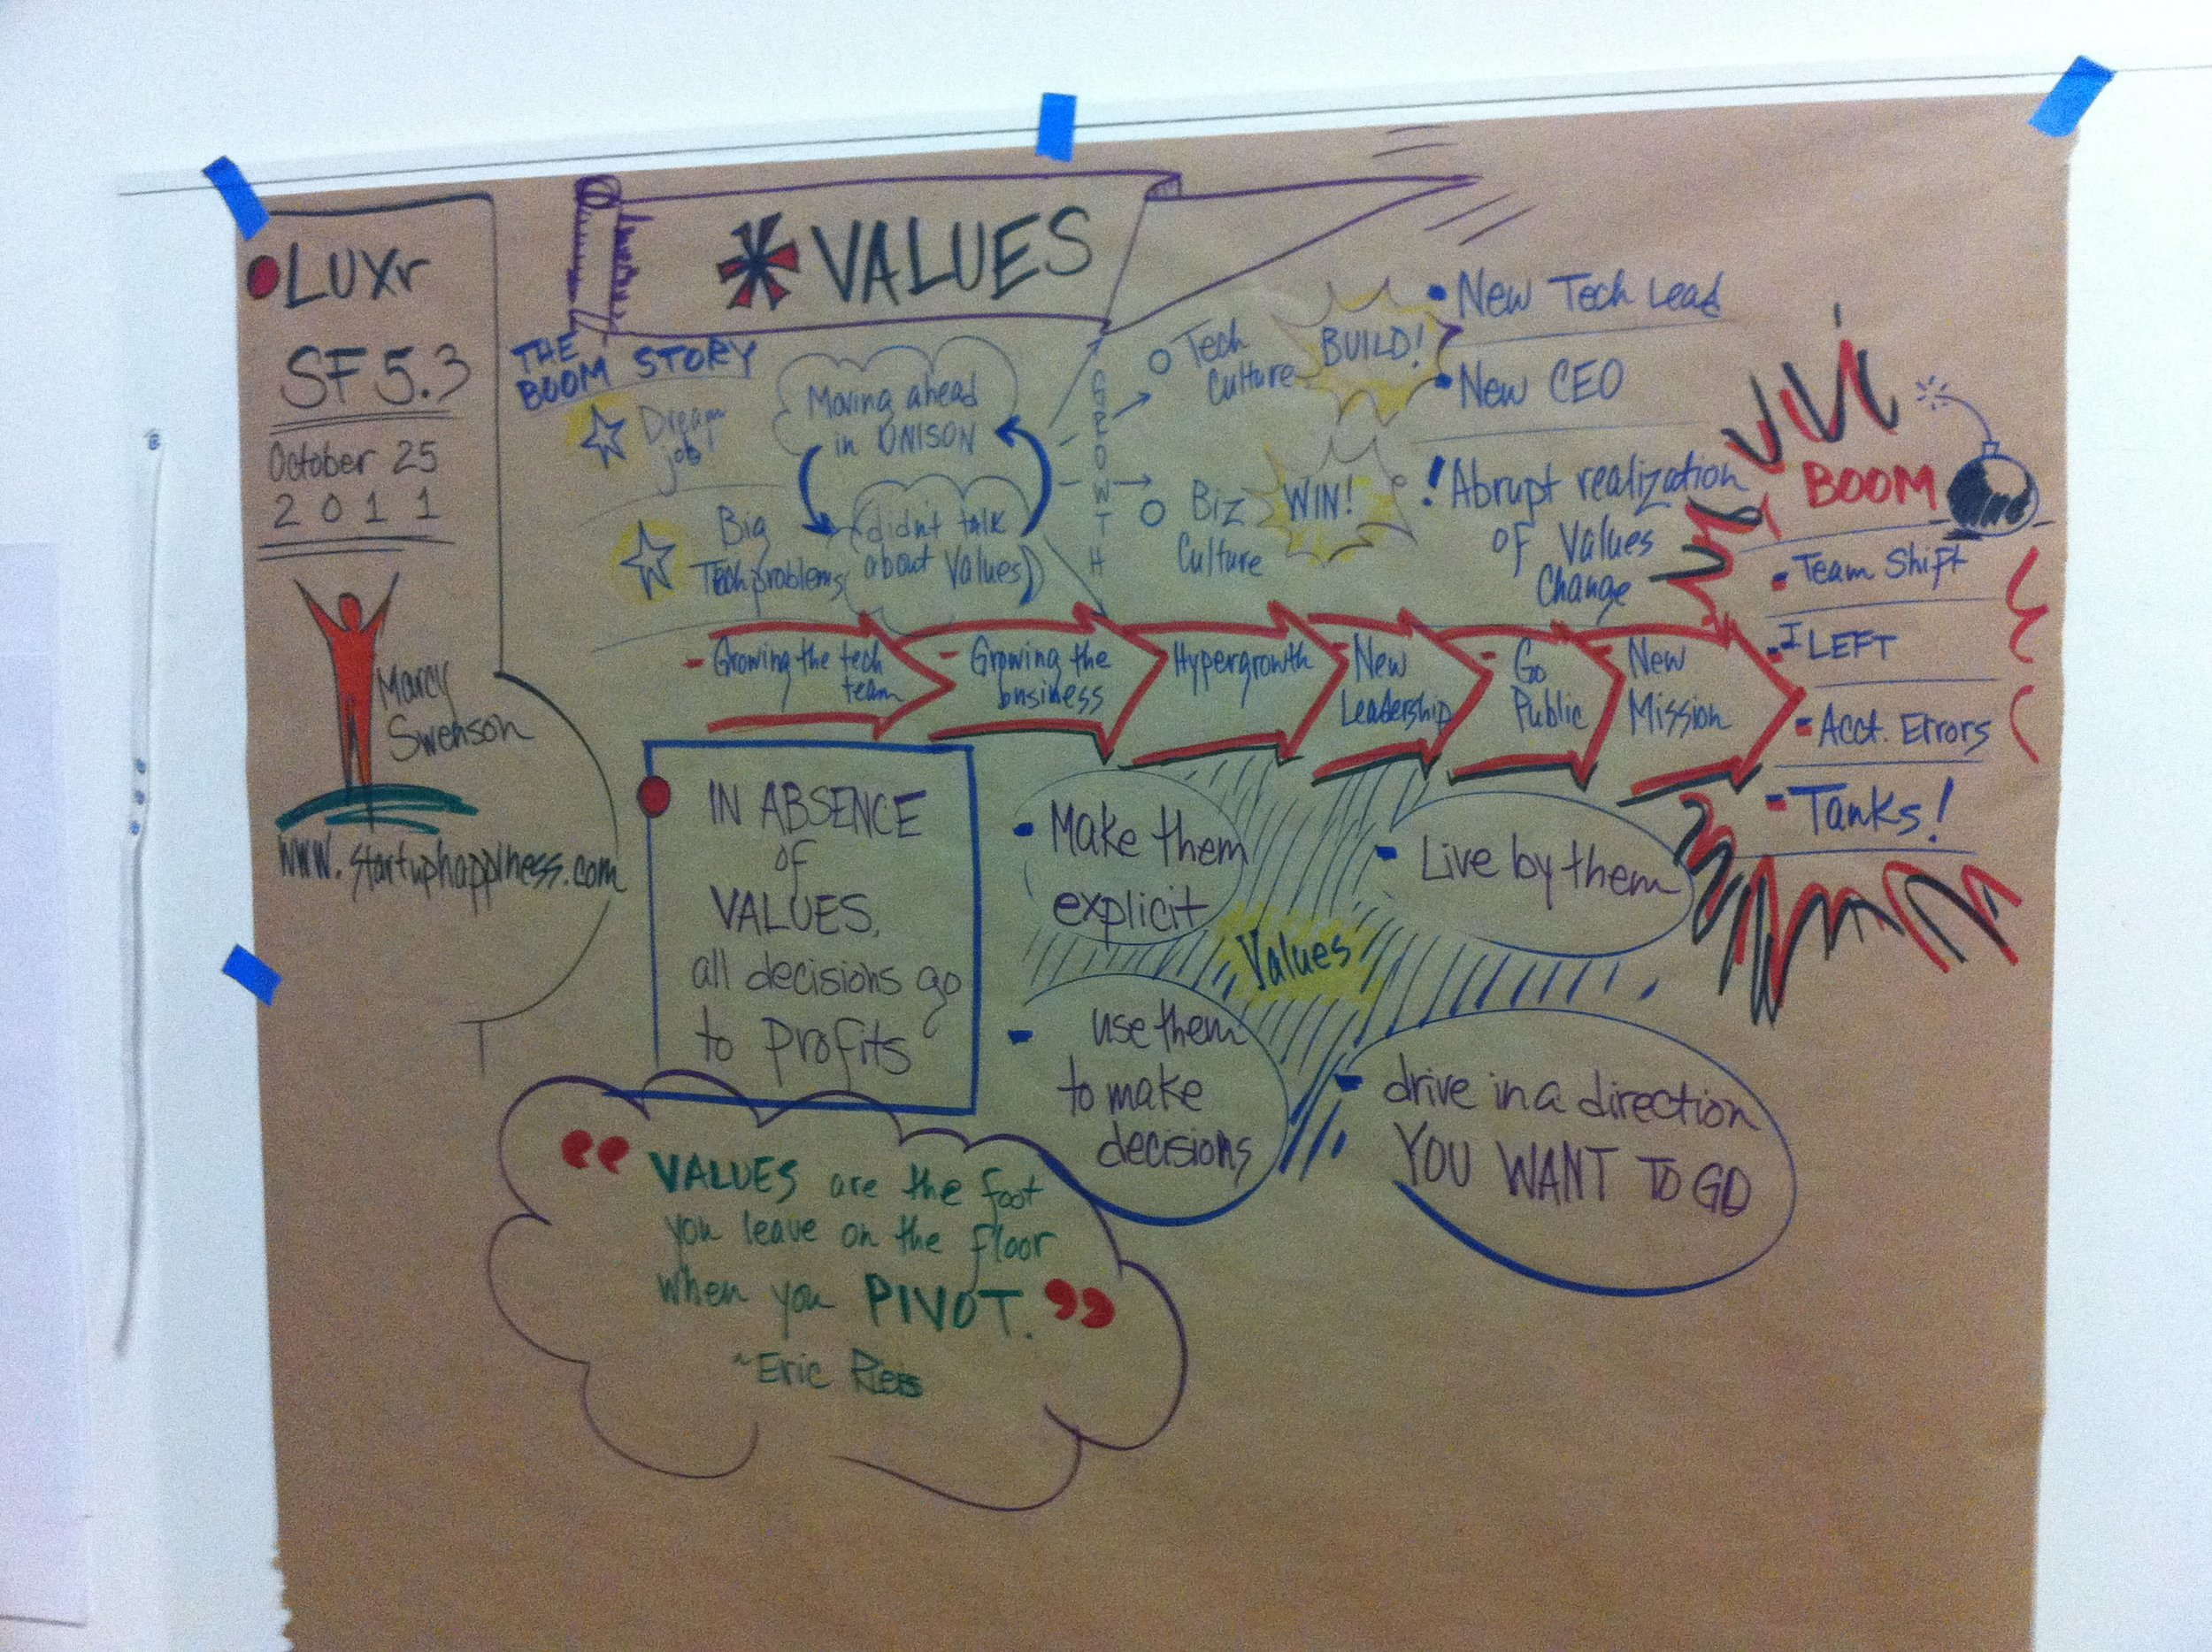 visual notes from LUXr